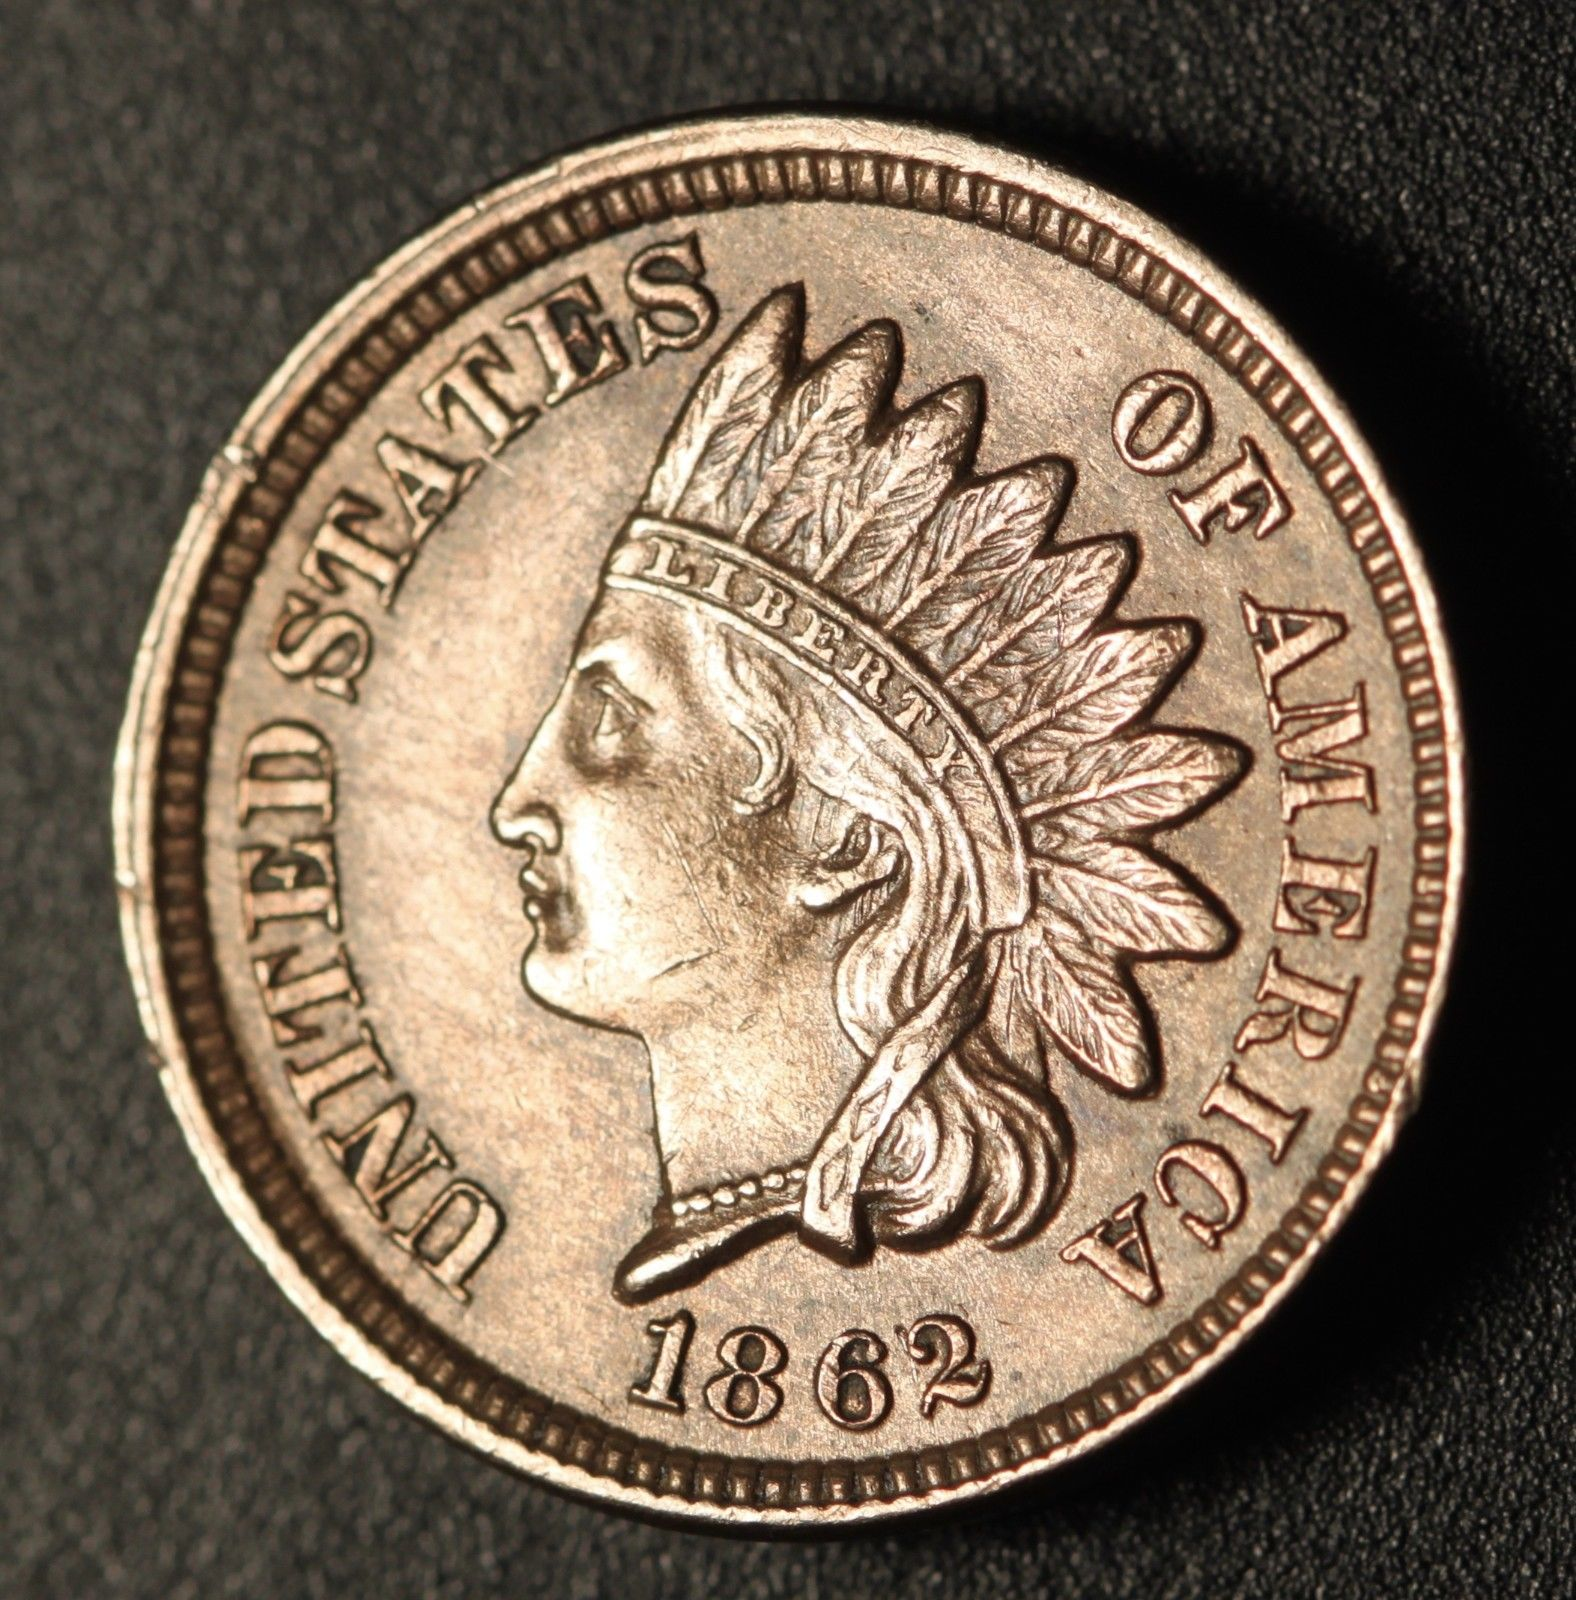 1862 ODD-003 - Indian Head Penny - Photo by Ed Nathanson